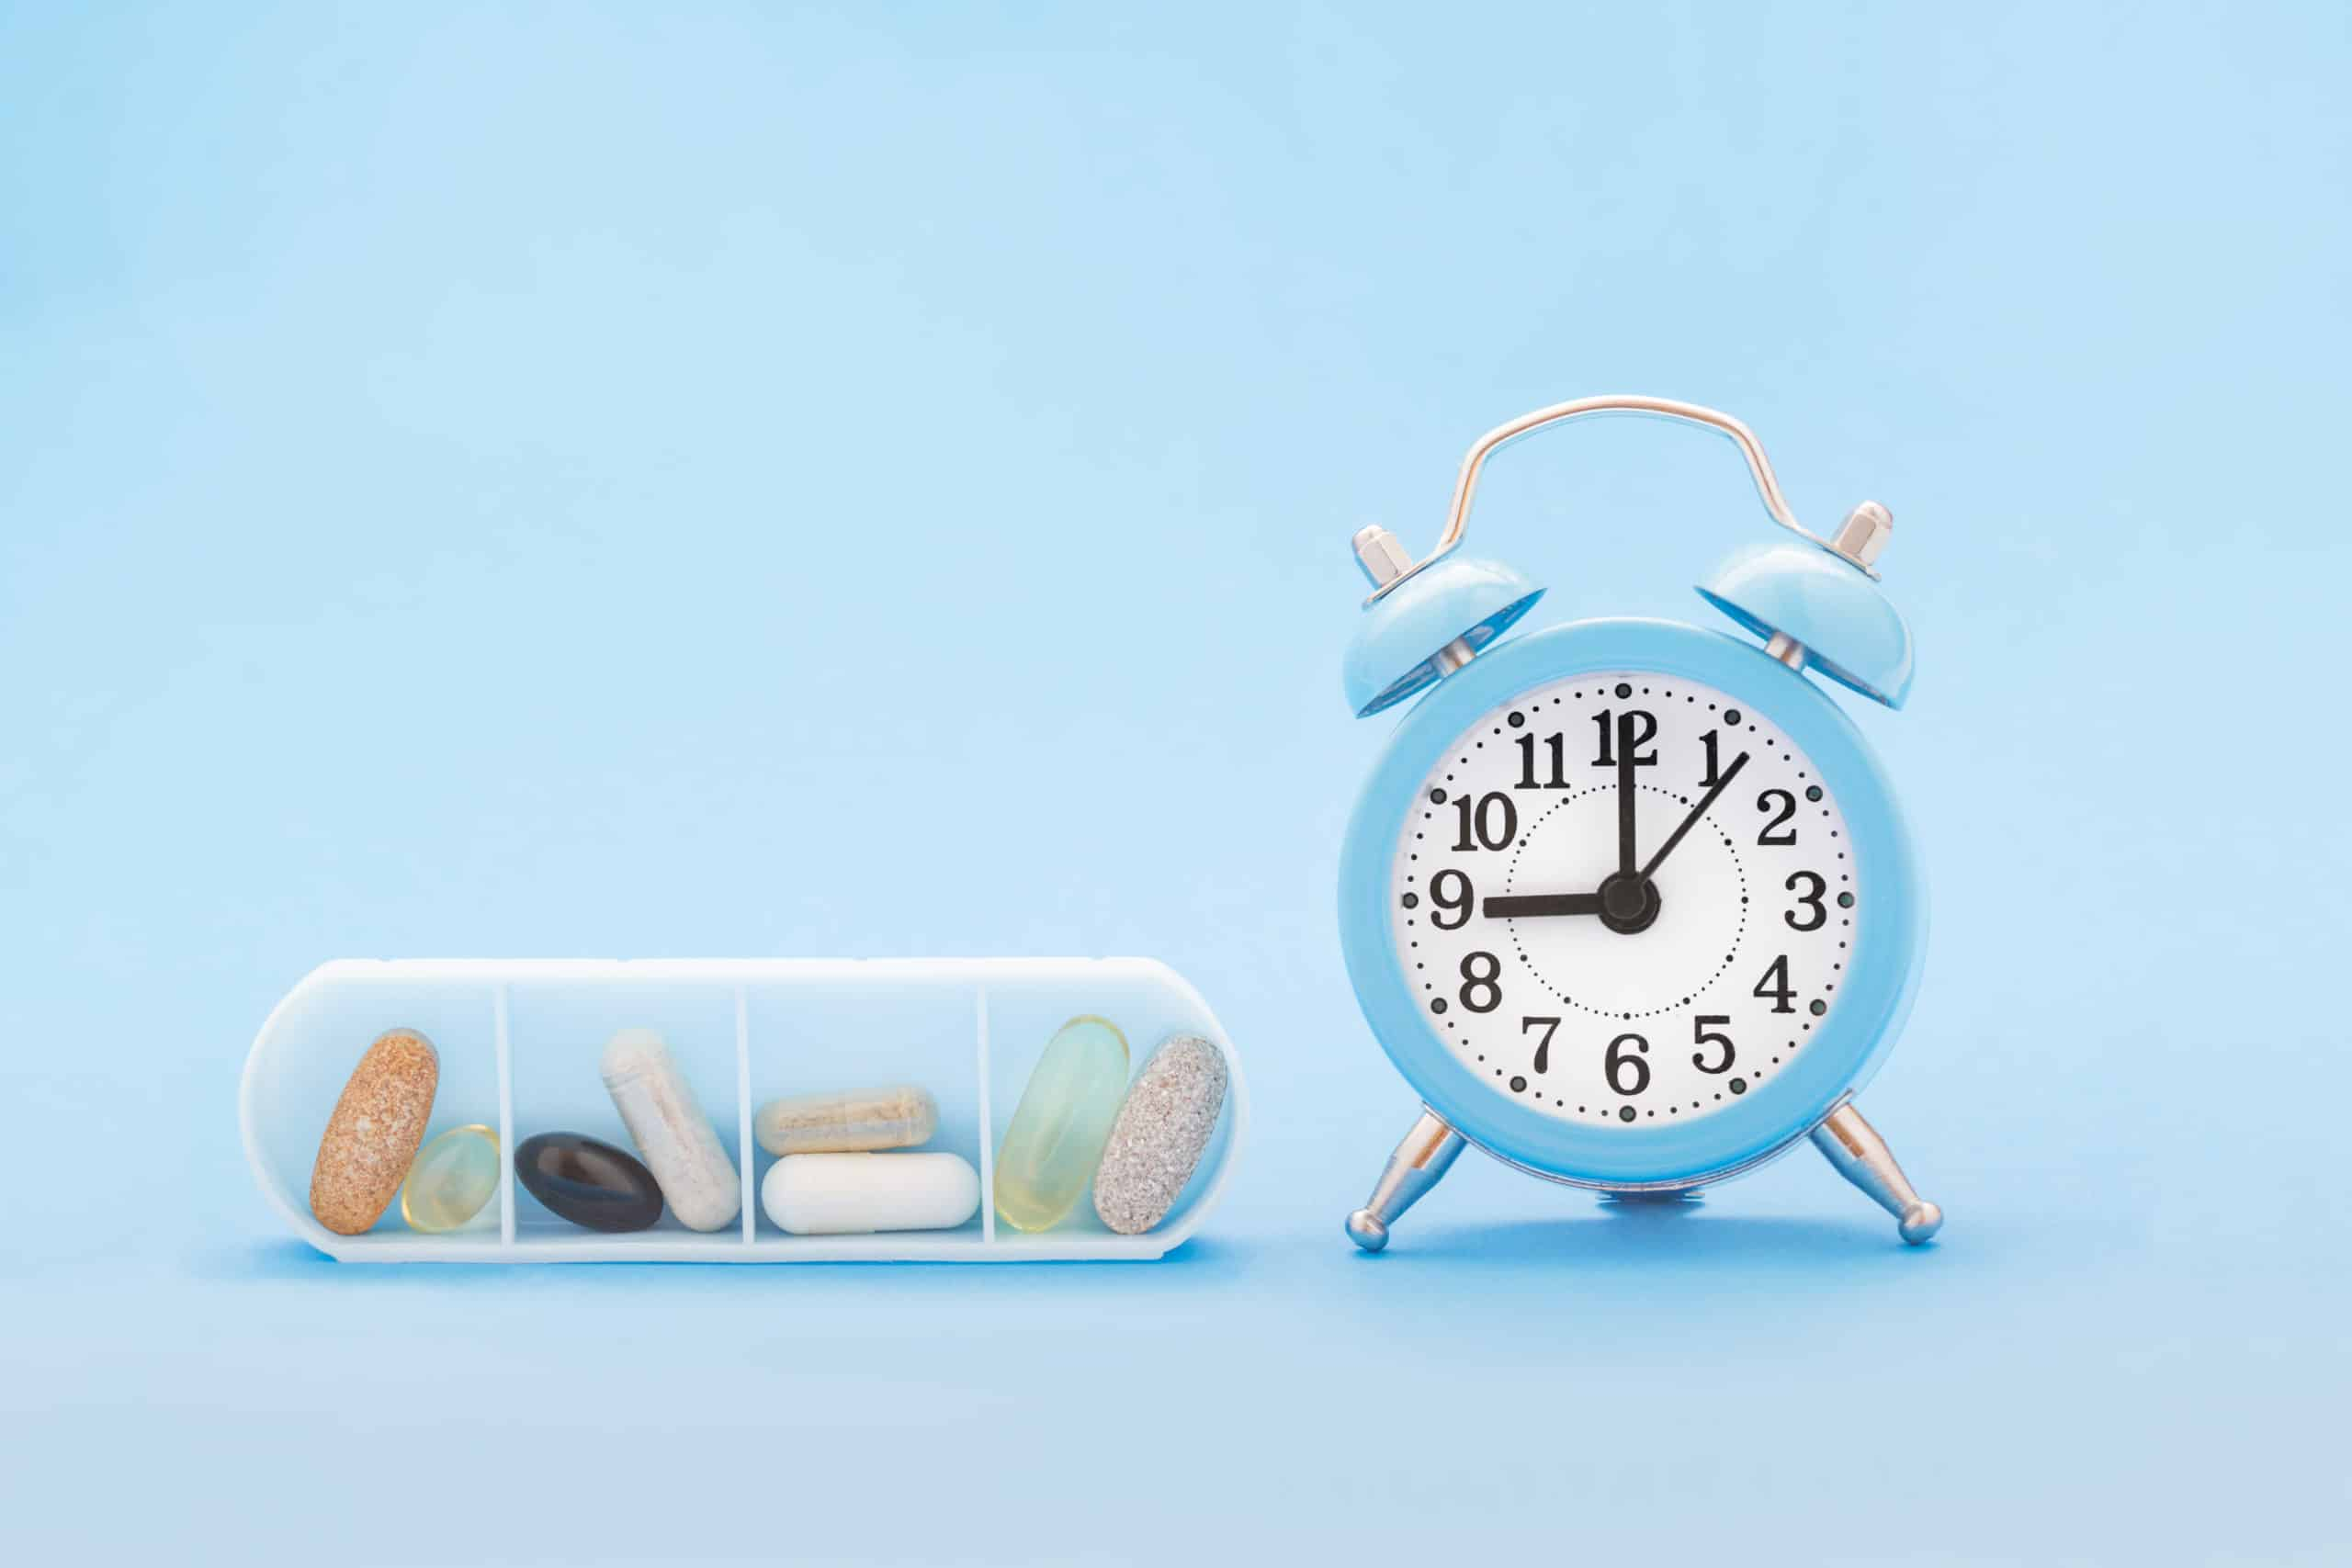 Various pills and capsules in organizer and clock on blue background.